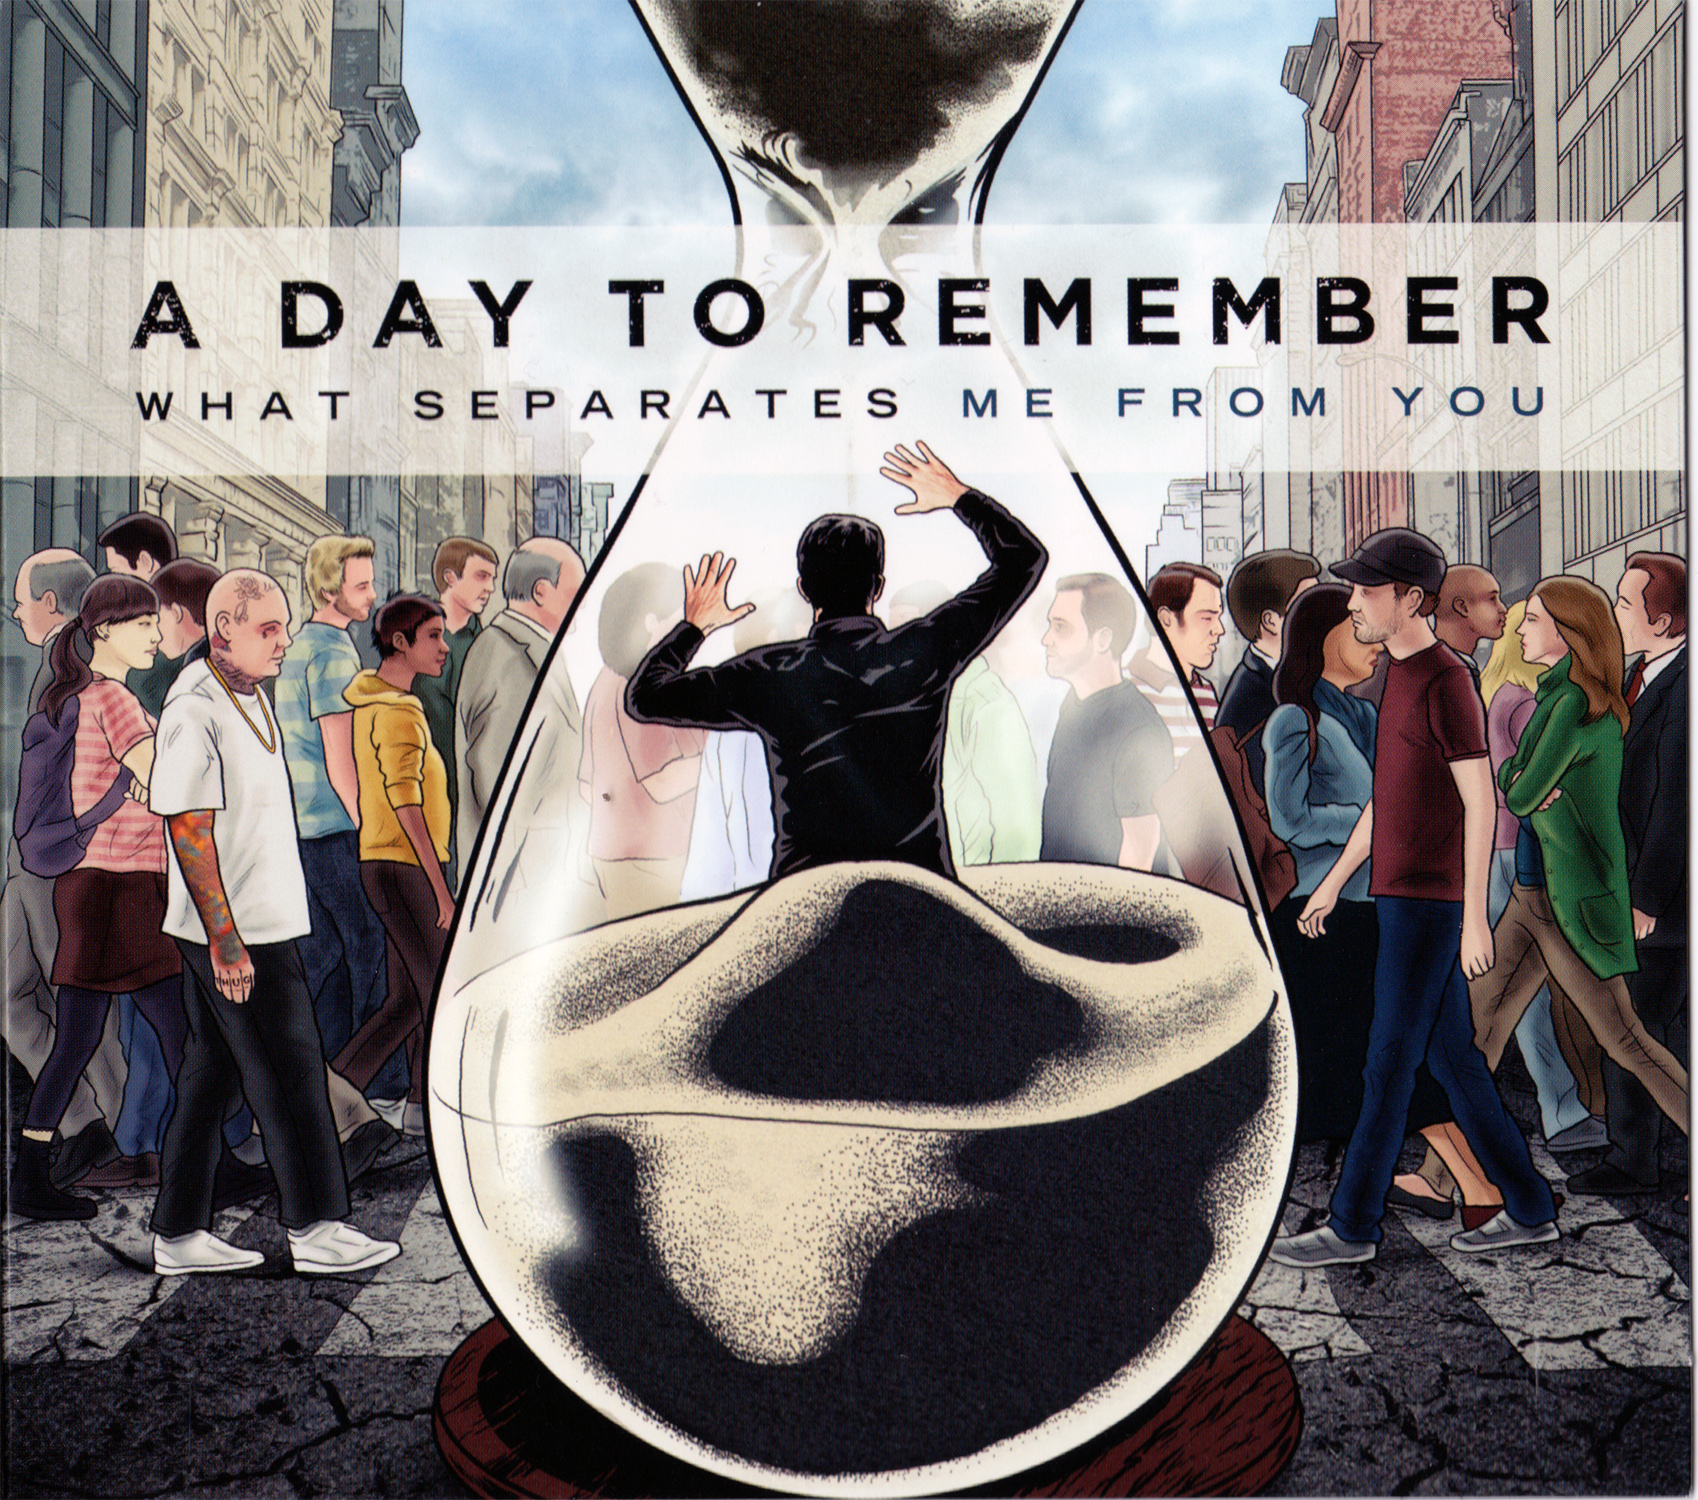 A Day To Remember Wallpapers Wallpaper 1698x1500